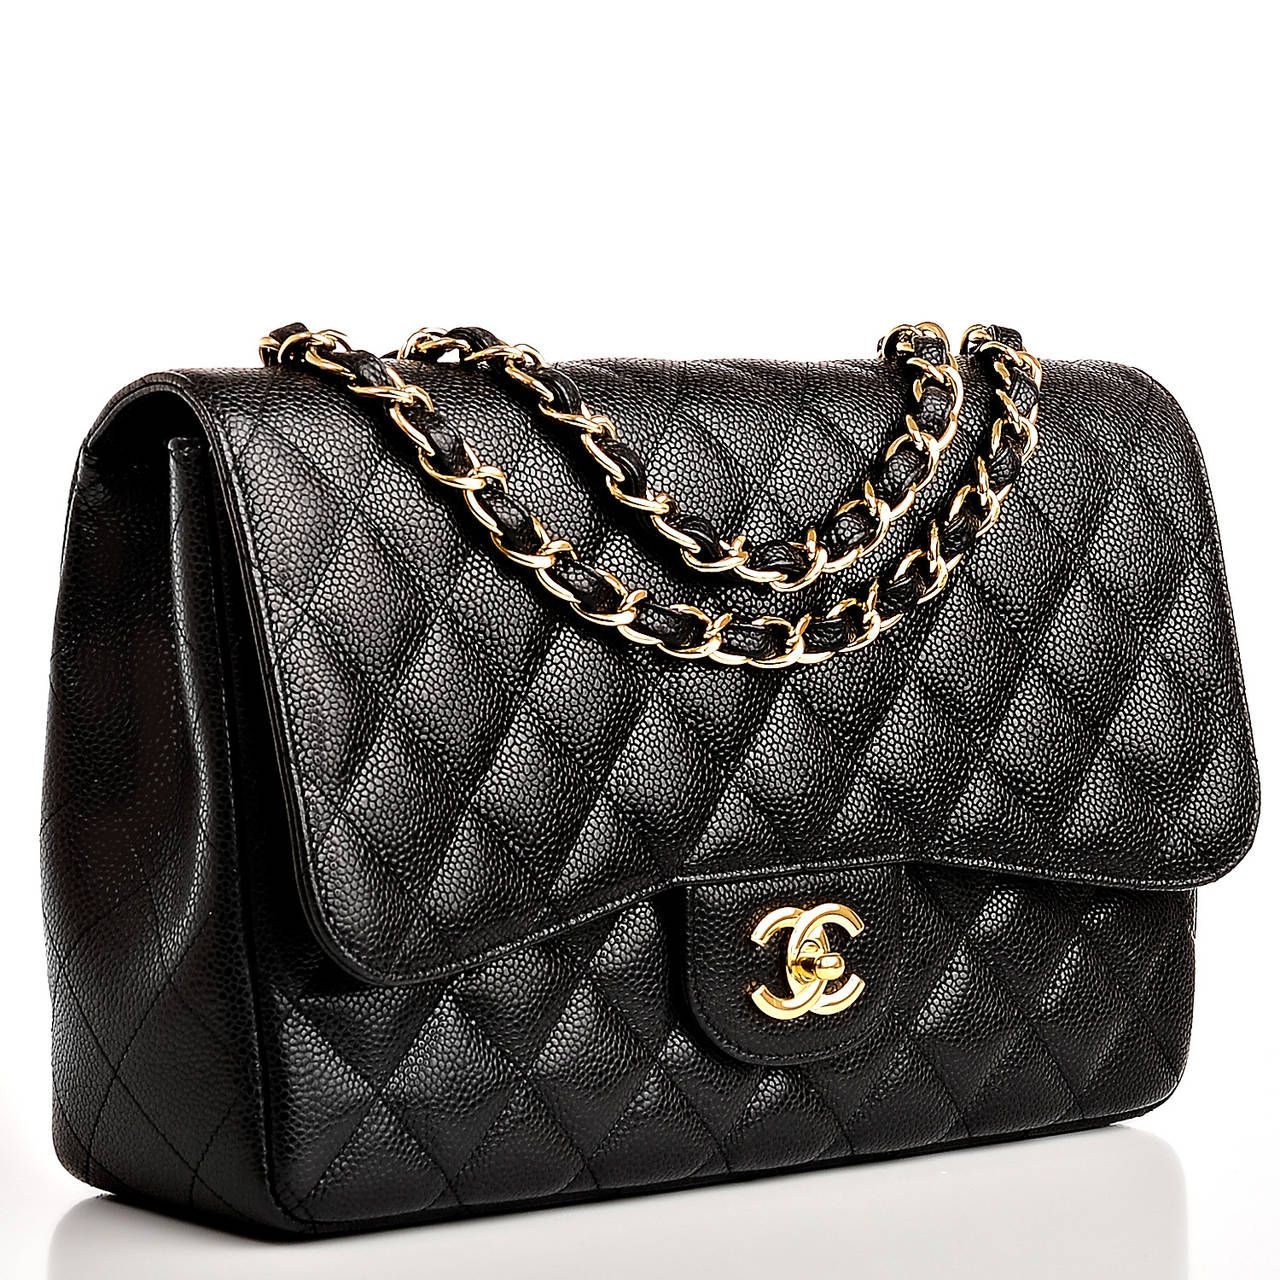 Image result for chanel flap medium single caviar | Ultimate Luxe ... : chanel bag black quilted - Adamdwight.com